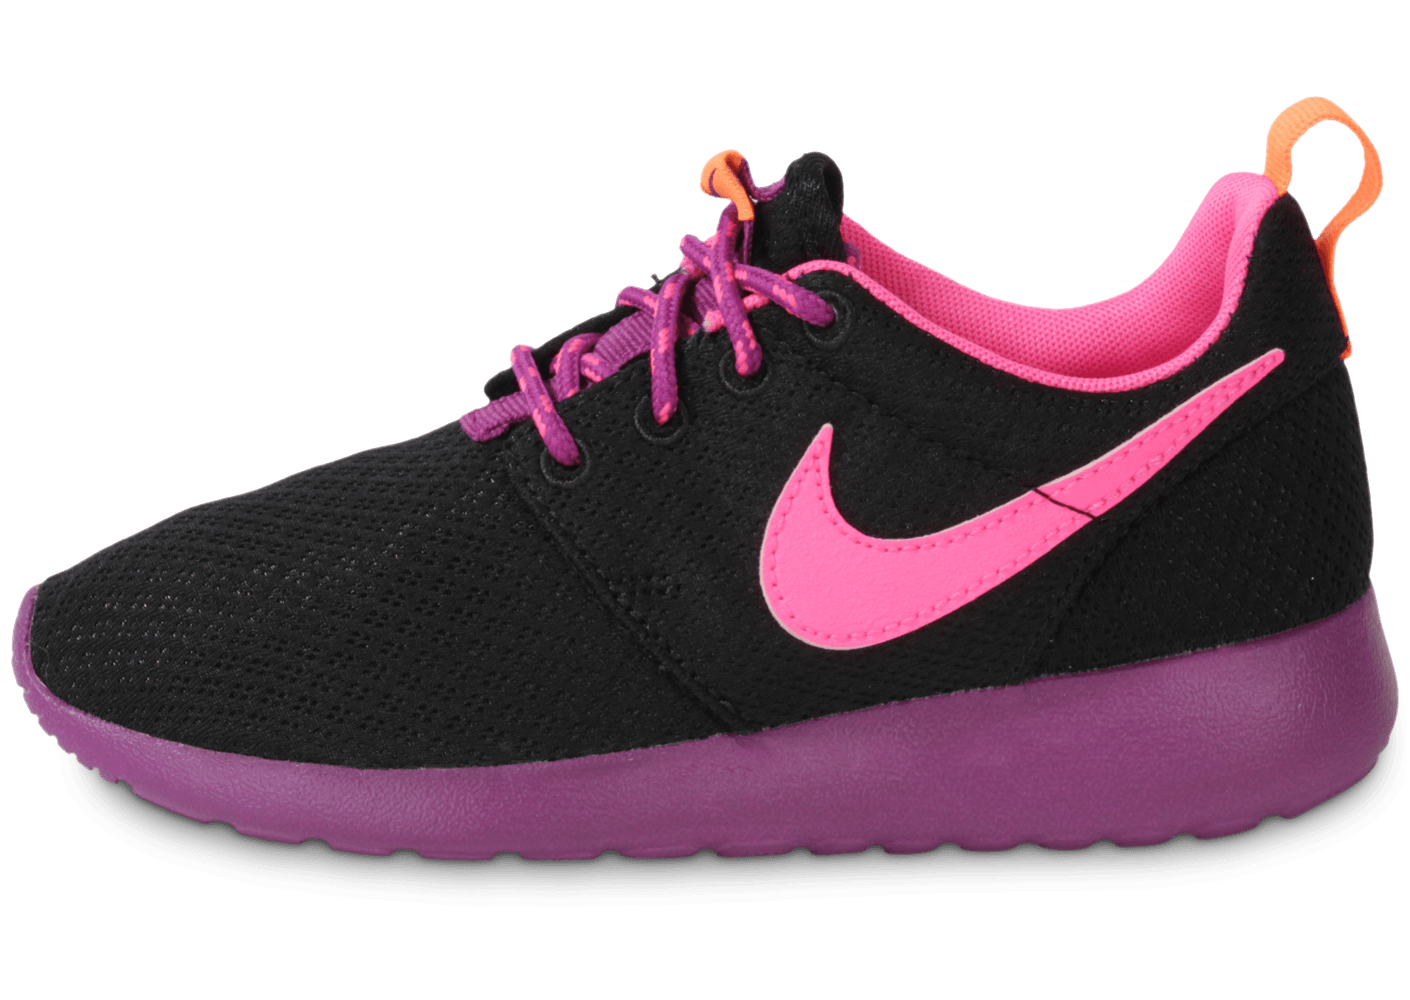 Nike Roshe Run Rose Enfant Chaussures Chaussures Chausport